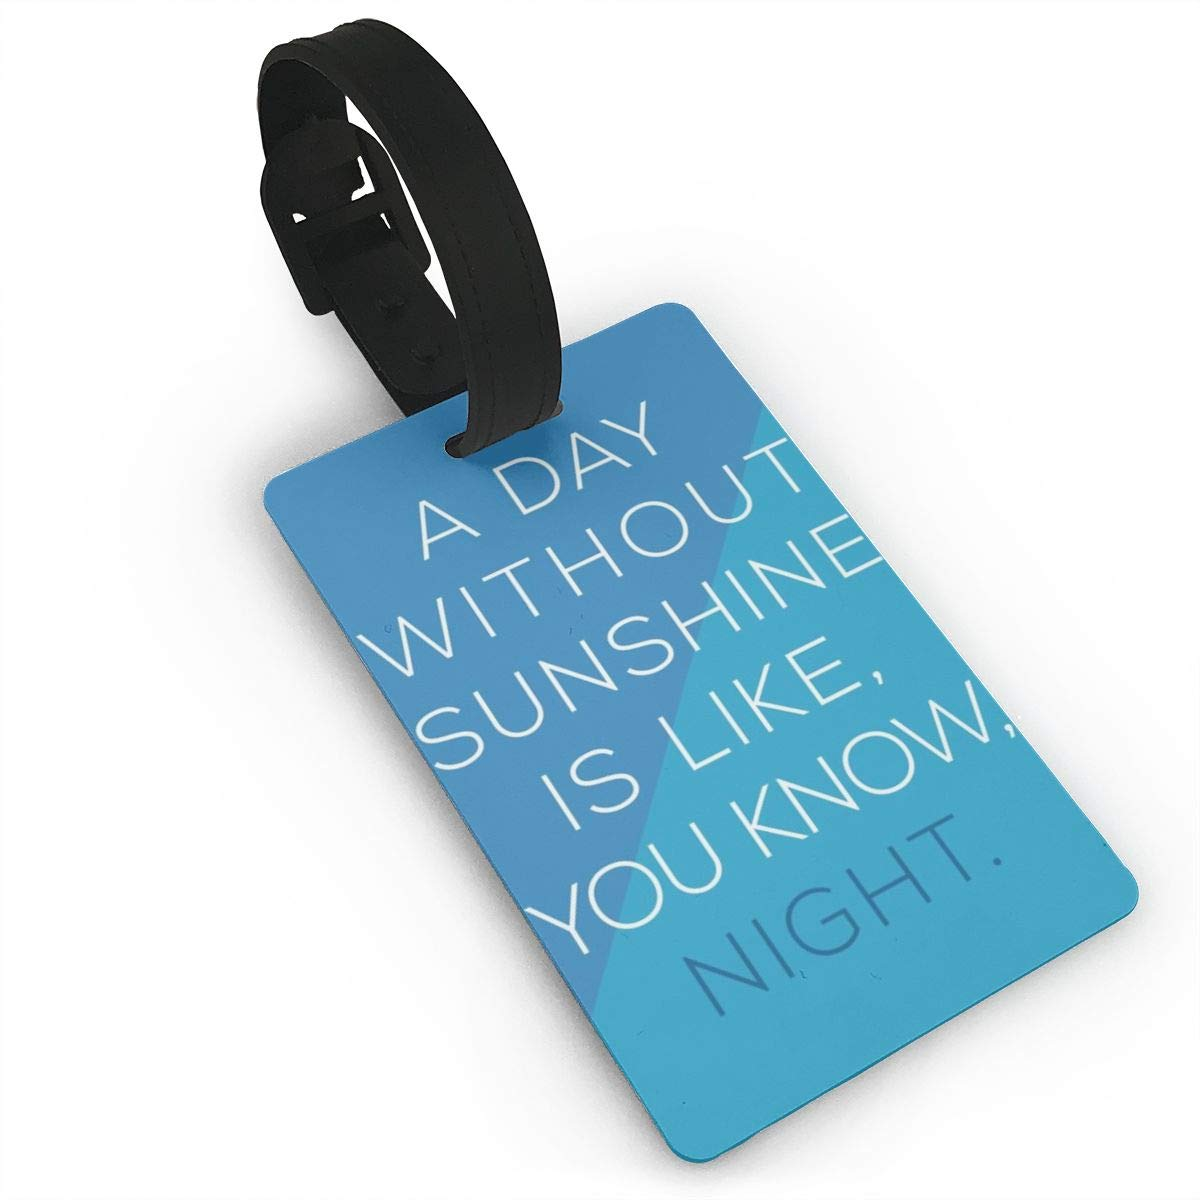 Night Luggage Tags Suitcase Labels Bag Travel Accessories Set of 2 You Know A Day Without Sunshine Is Like